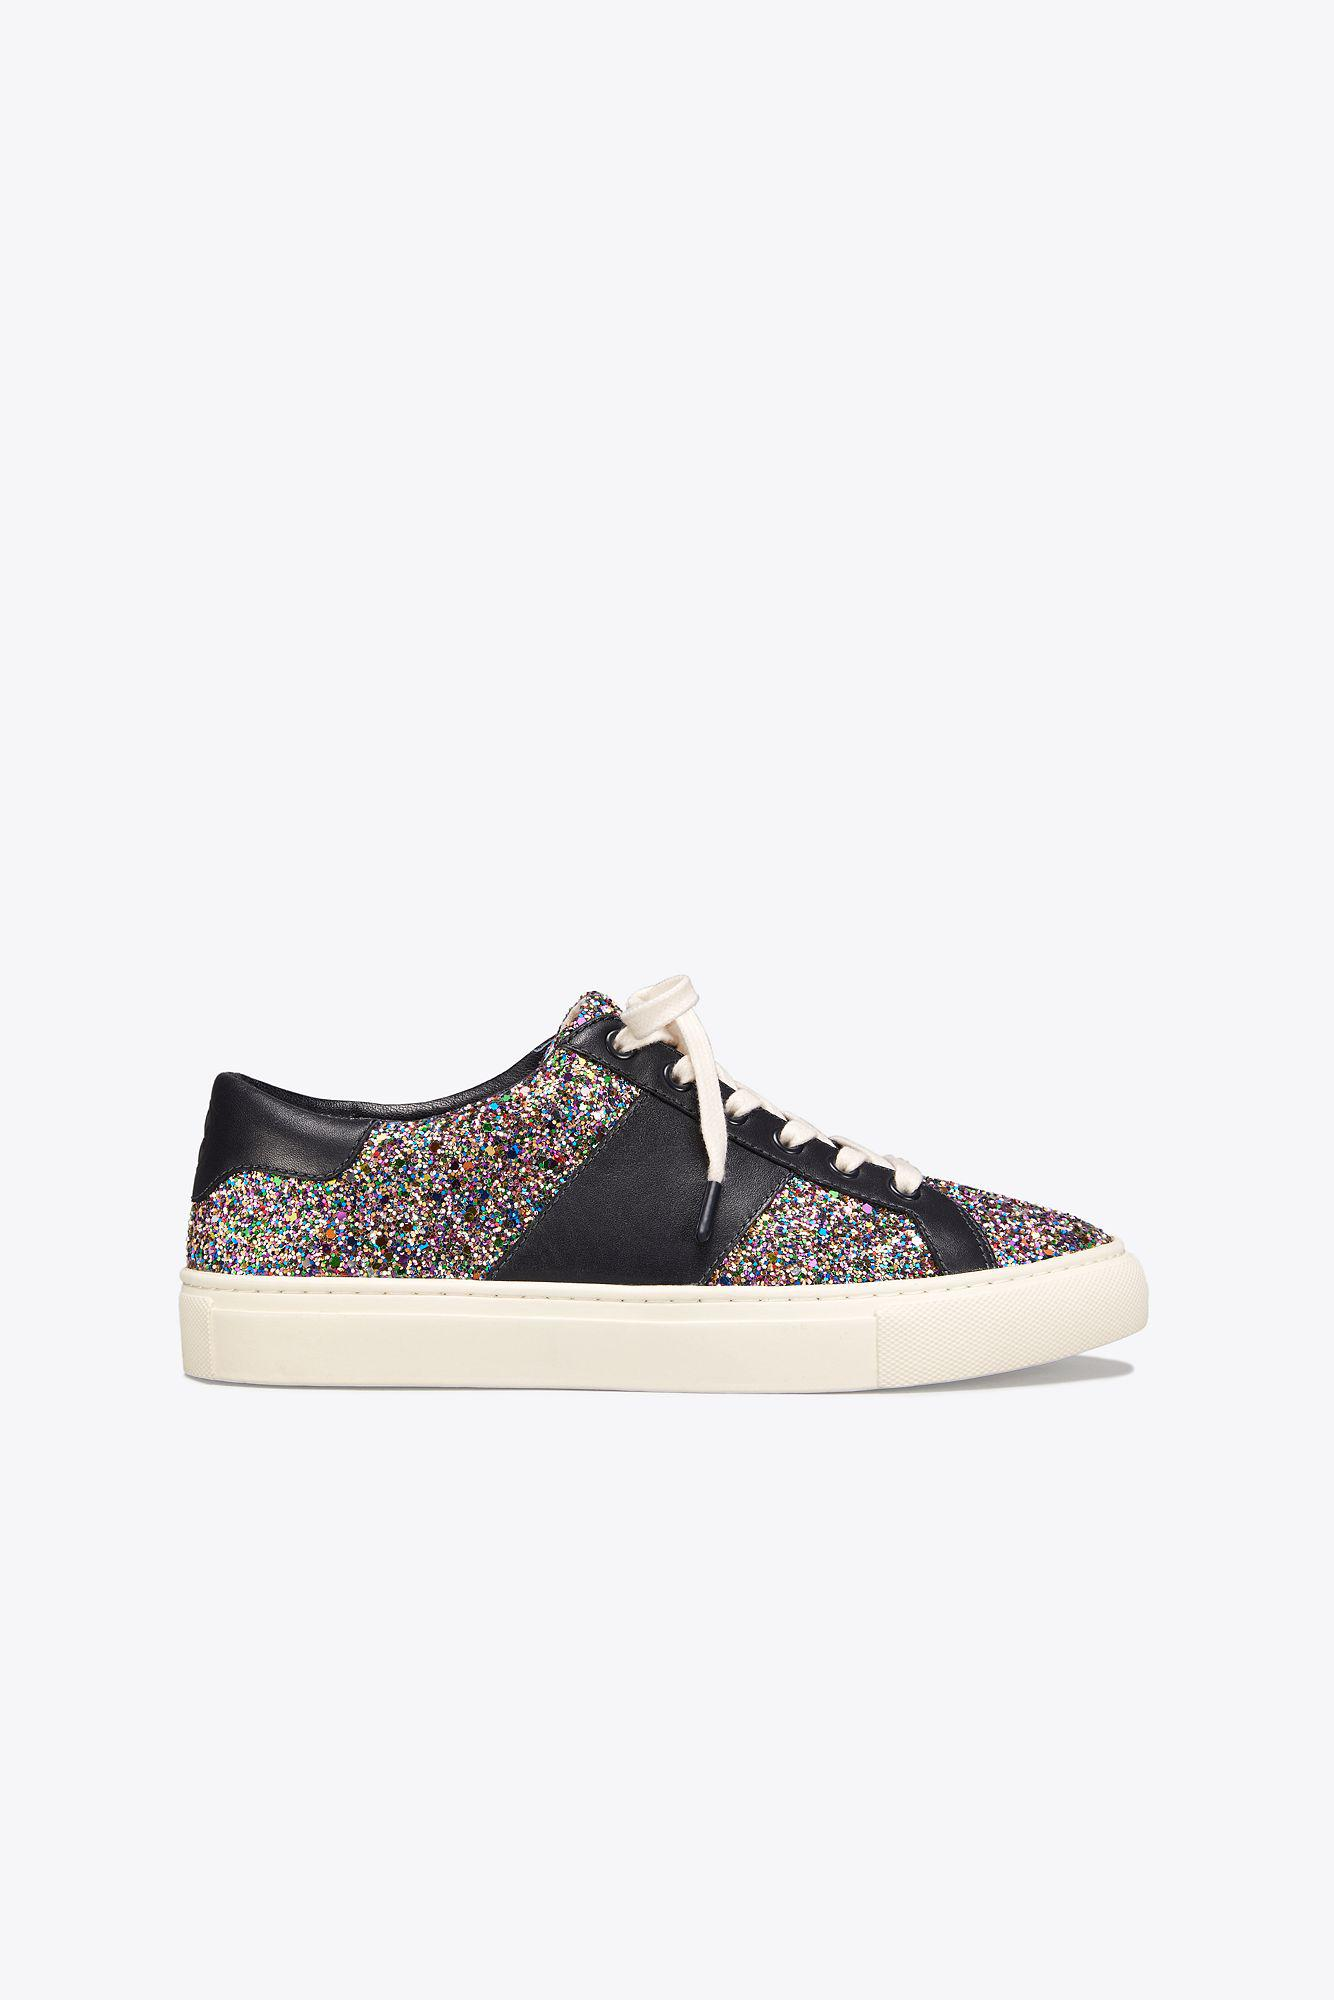 f0e4a5f12 Tory Burch. Women s Carter Confetti-glitter Lace-up Sneaker